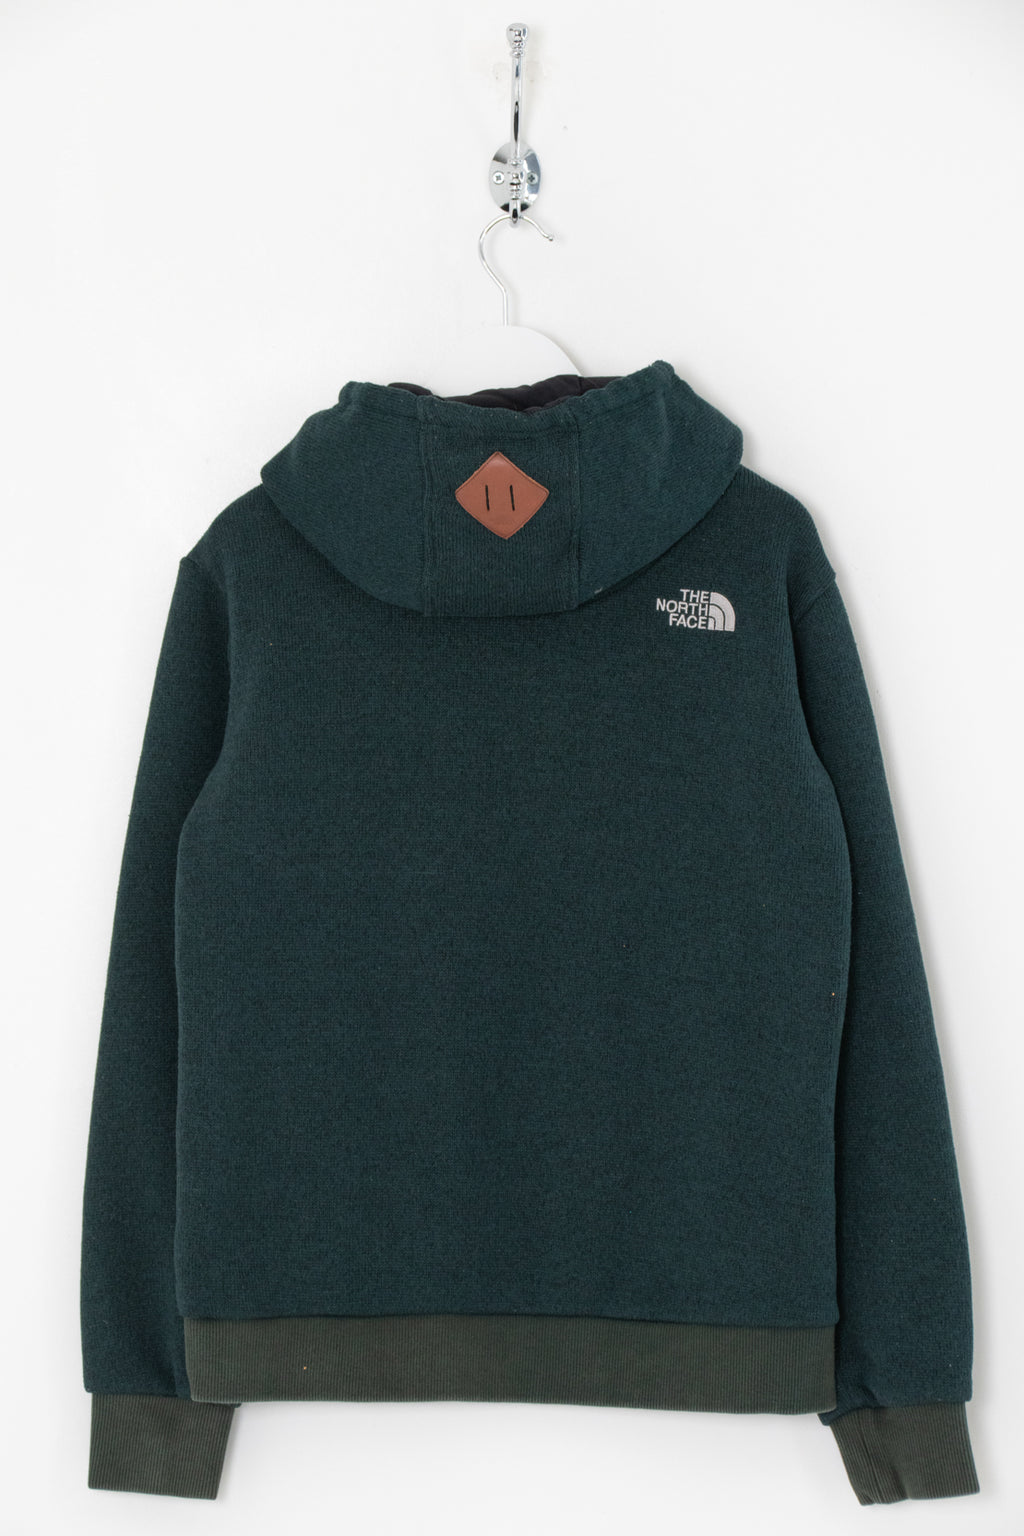 The North Face Hoodie (XS)